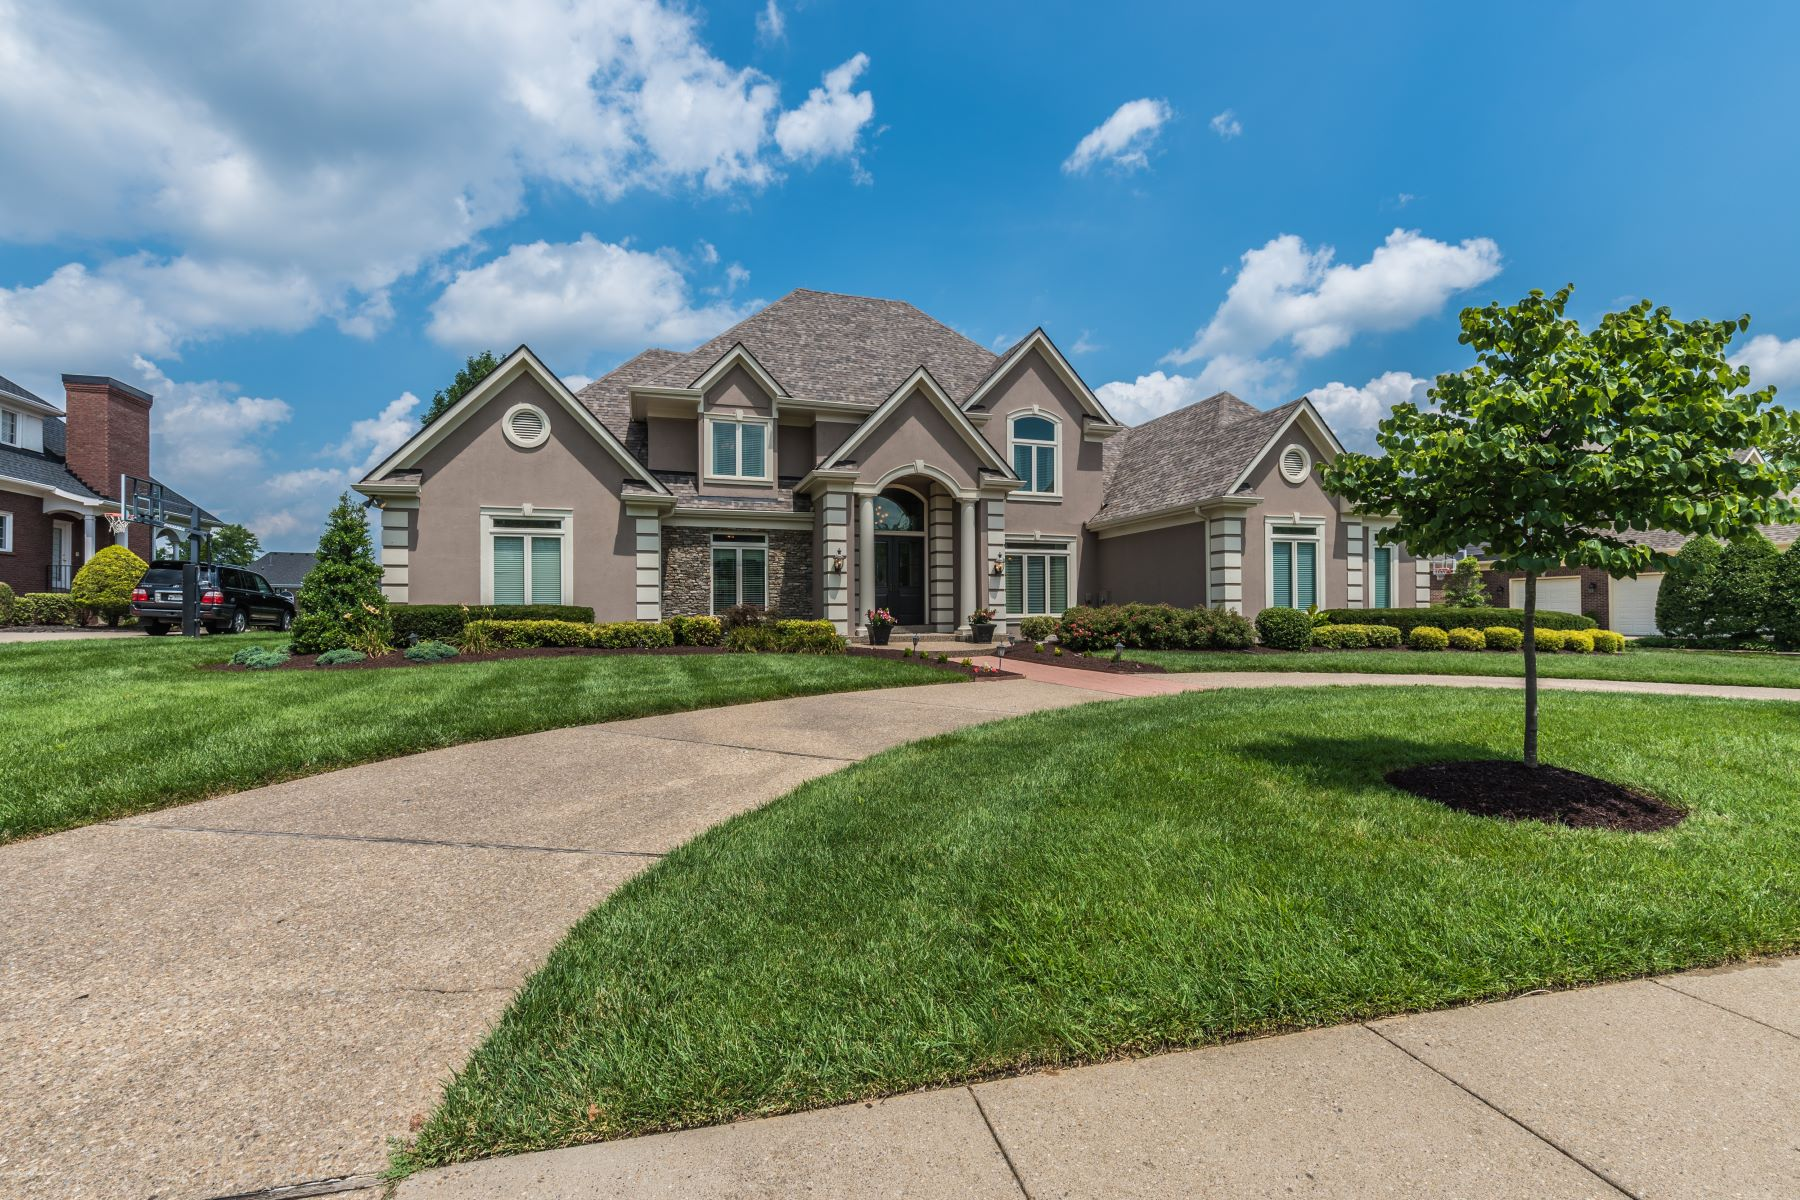 Single Family Home for Sale at 2006 Fairway Vista Drive Louisville, Kentucky 40245 United States